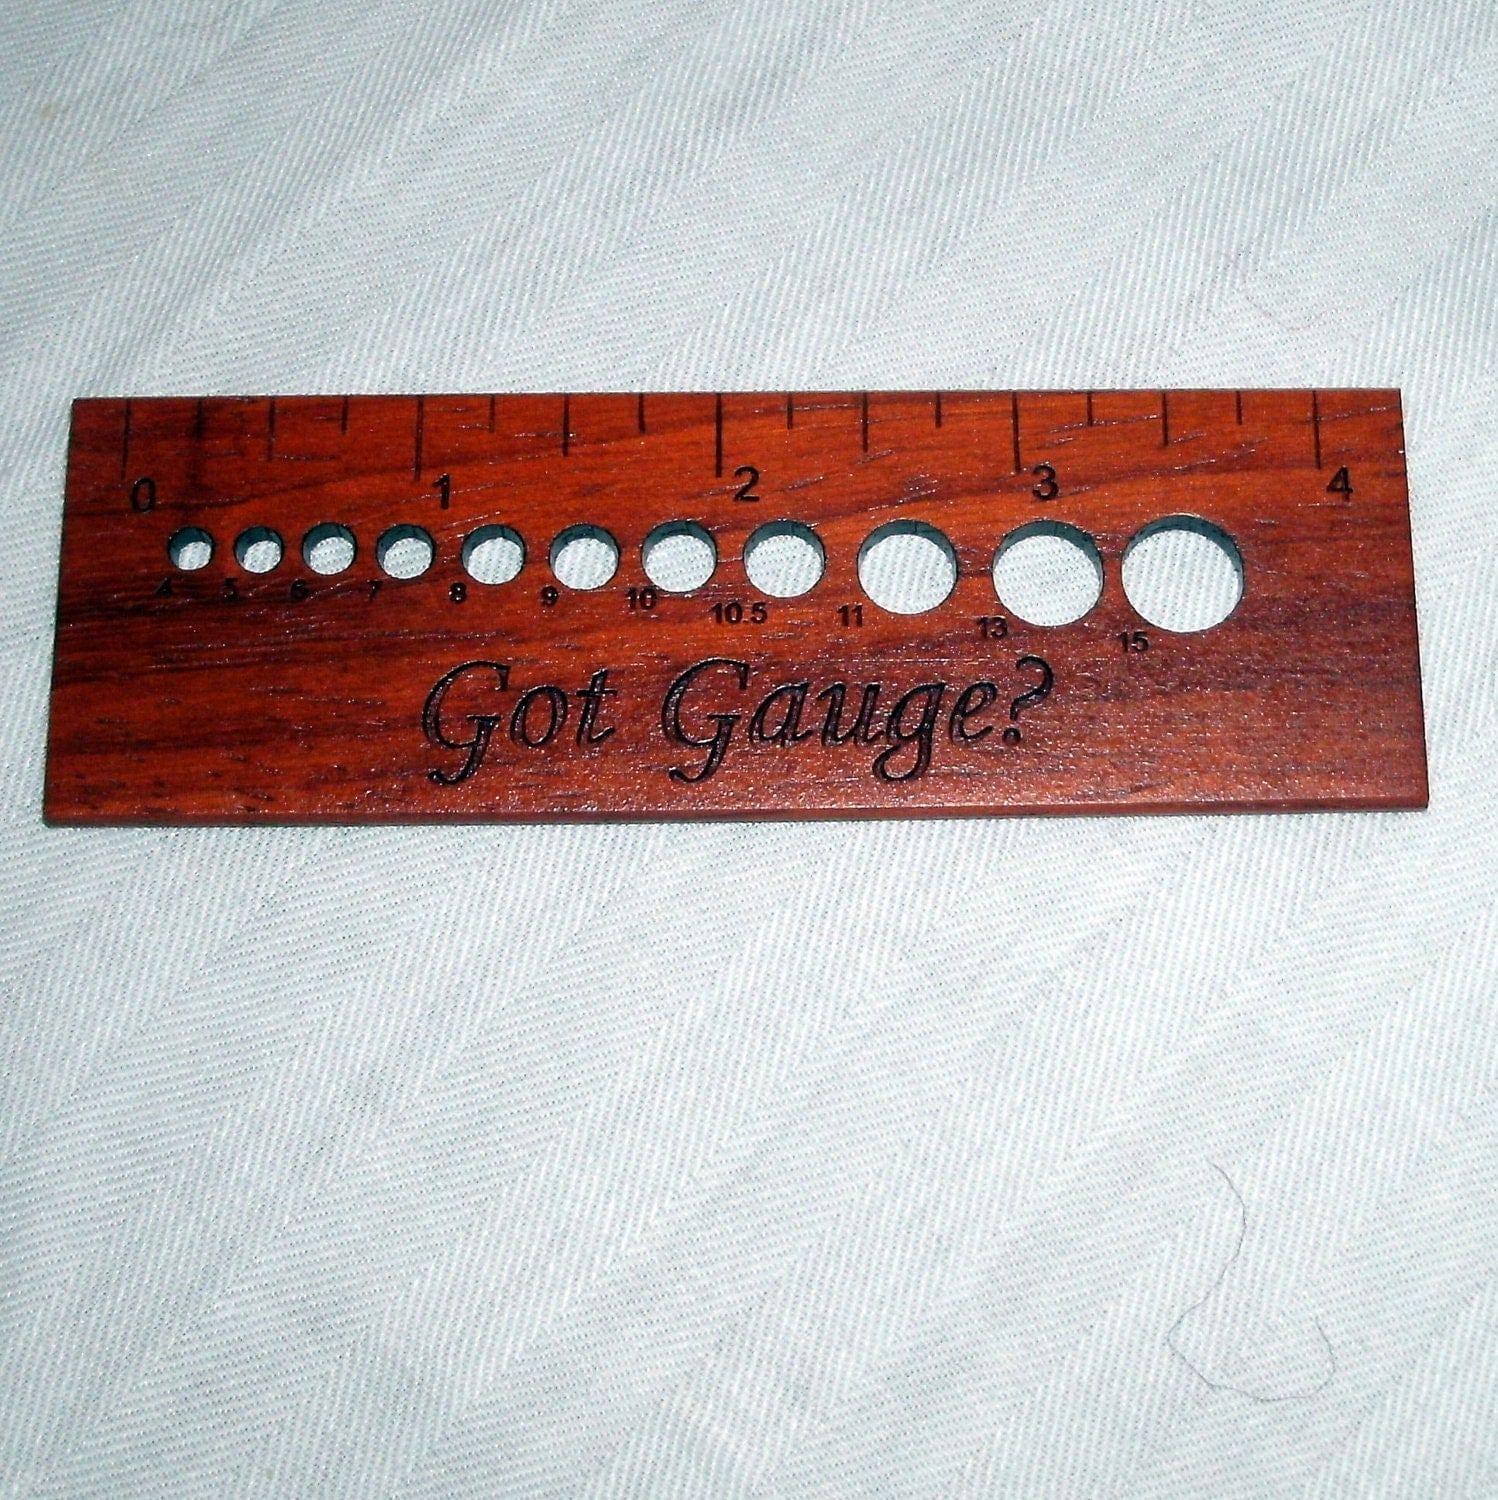 Knitting Gauge ruler with needle size gauge